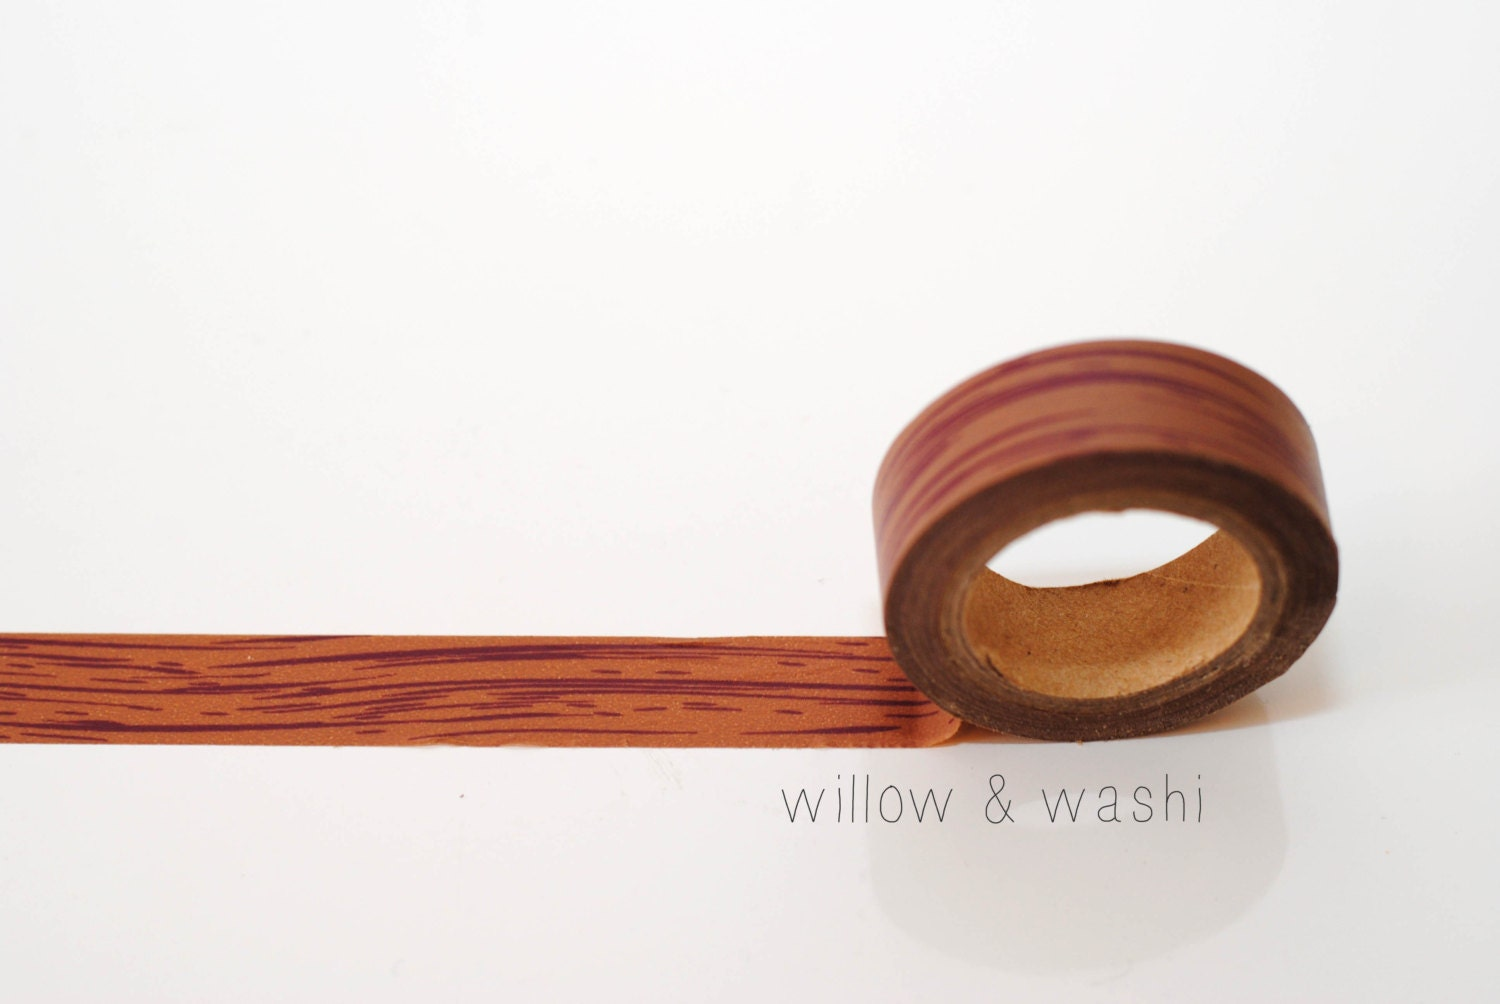 wood grain washi tape by willowwashi on etsy. Black Bedroom Furniture Sets. Home Design Ideas